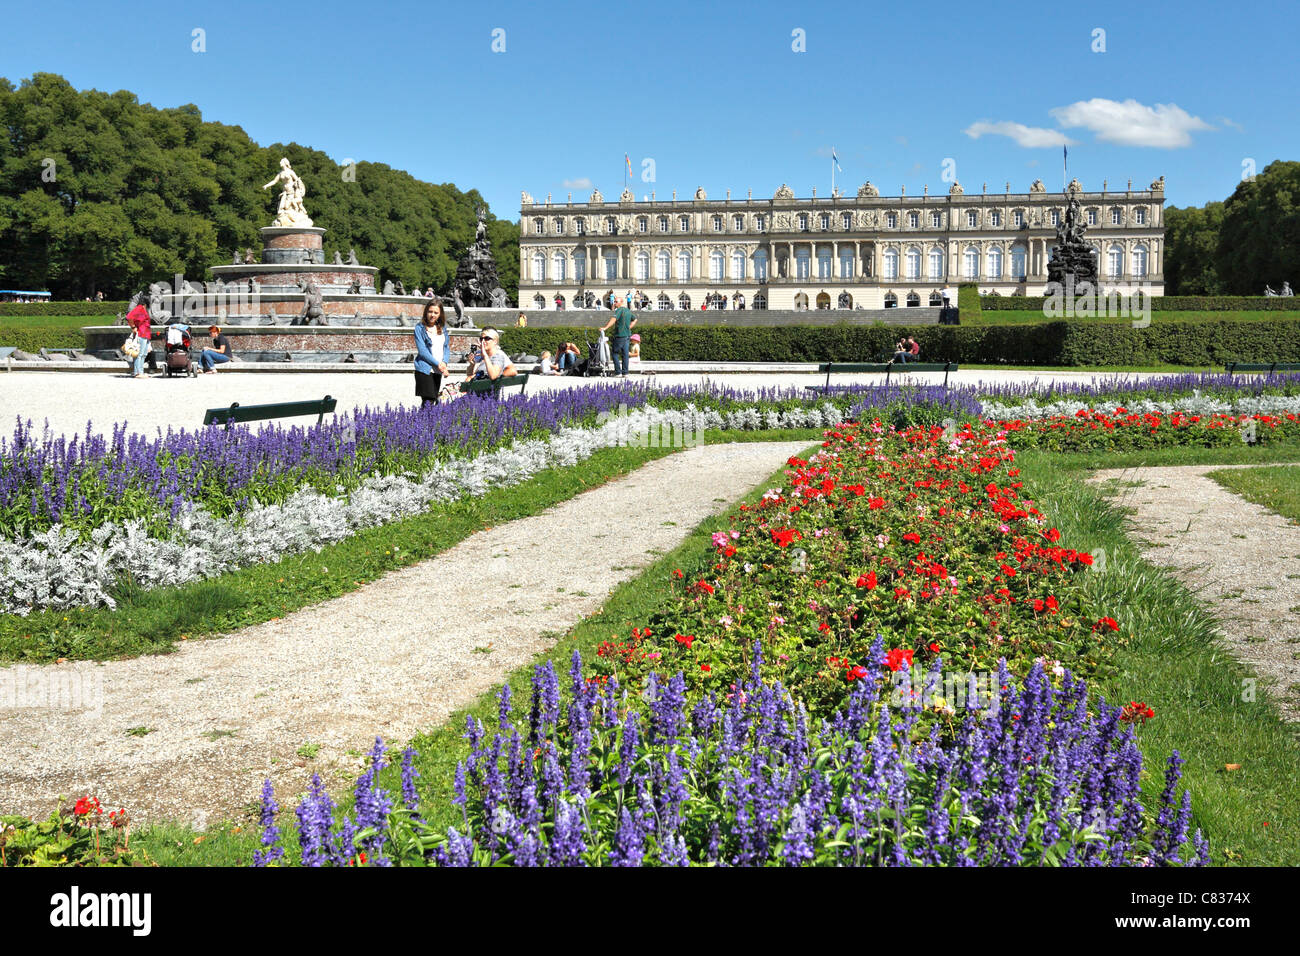 Herrechiemsee Schloss Palace Garden, Herreninsel Chiemgau Upper Bavaria Germany - Stock Image